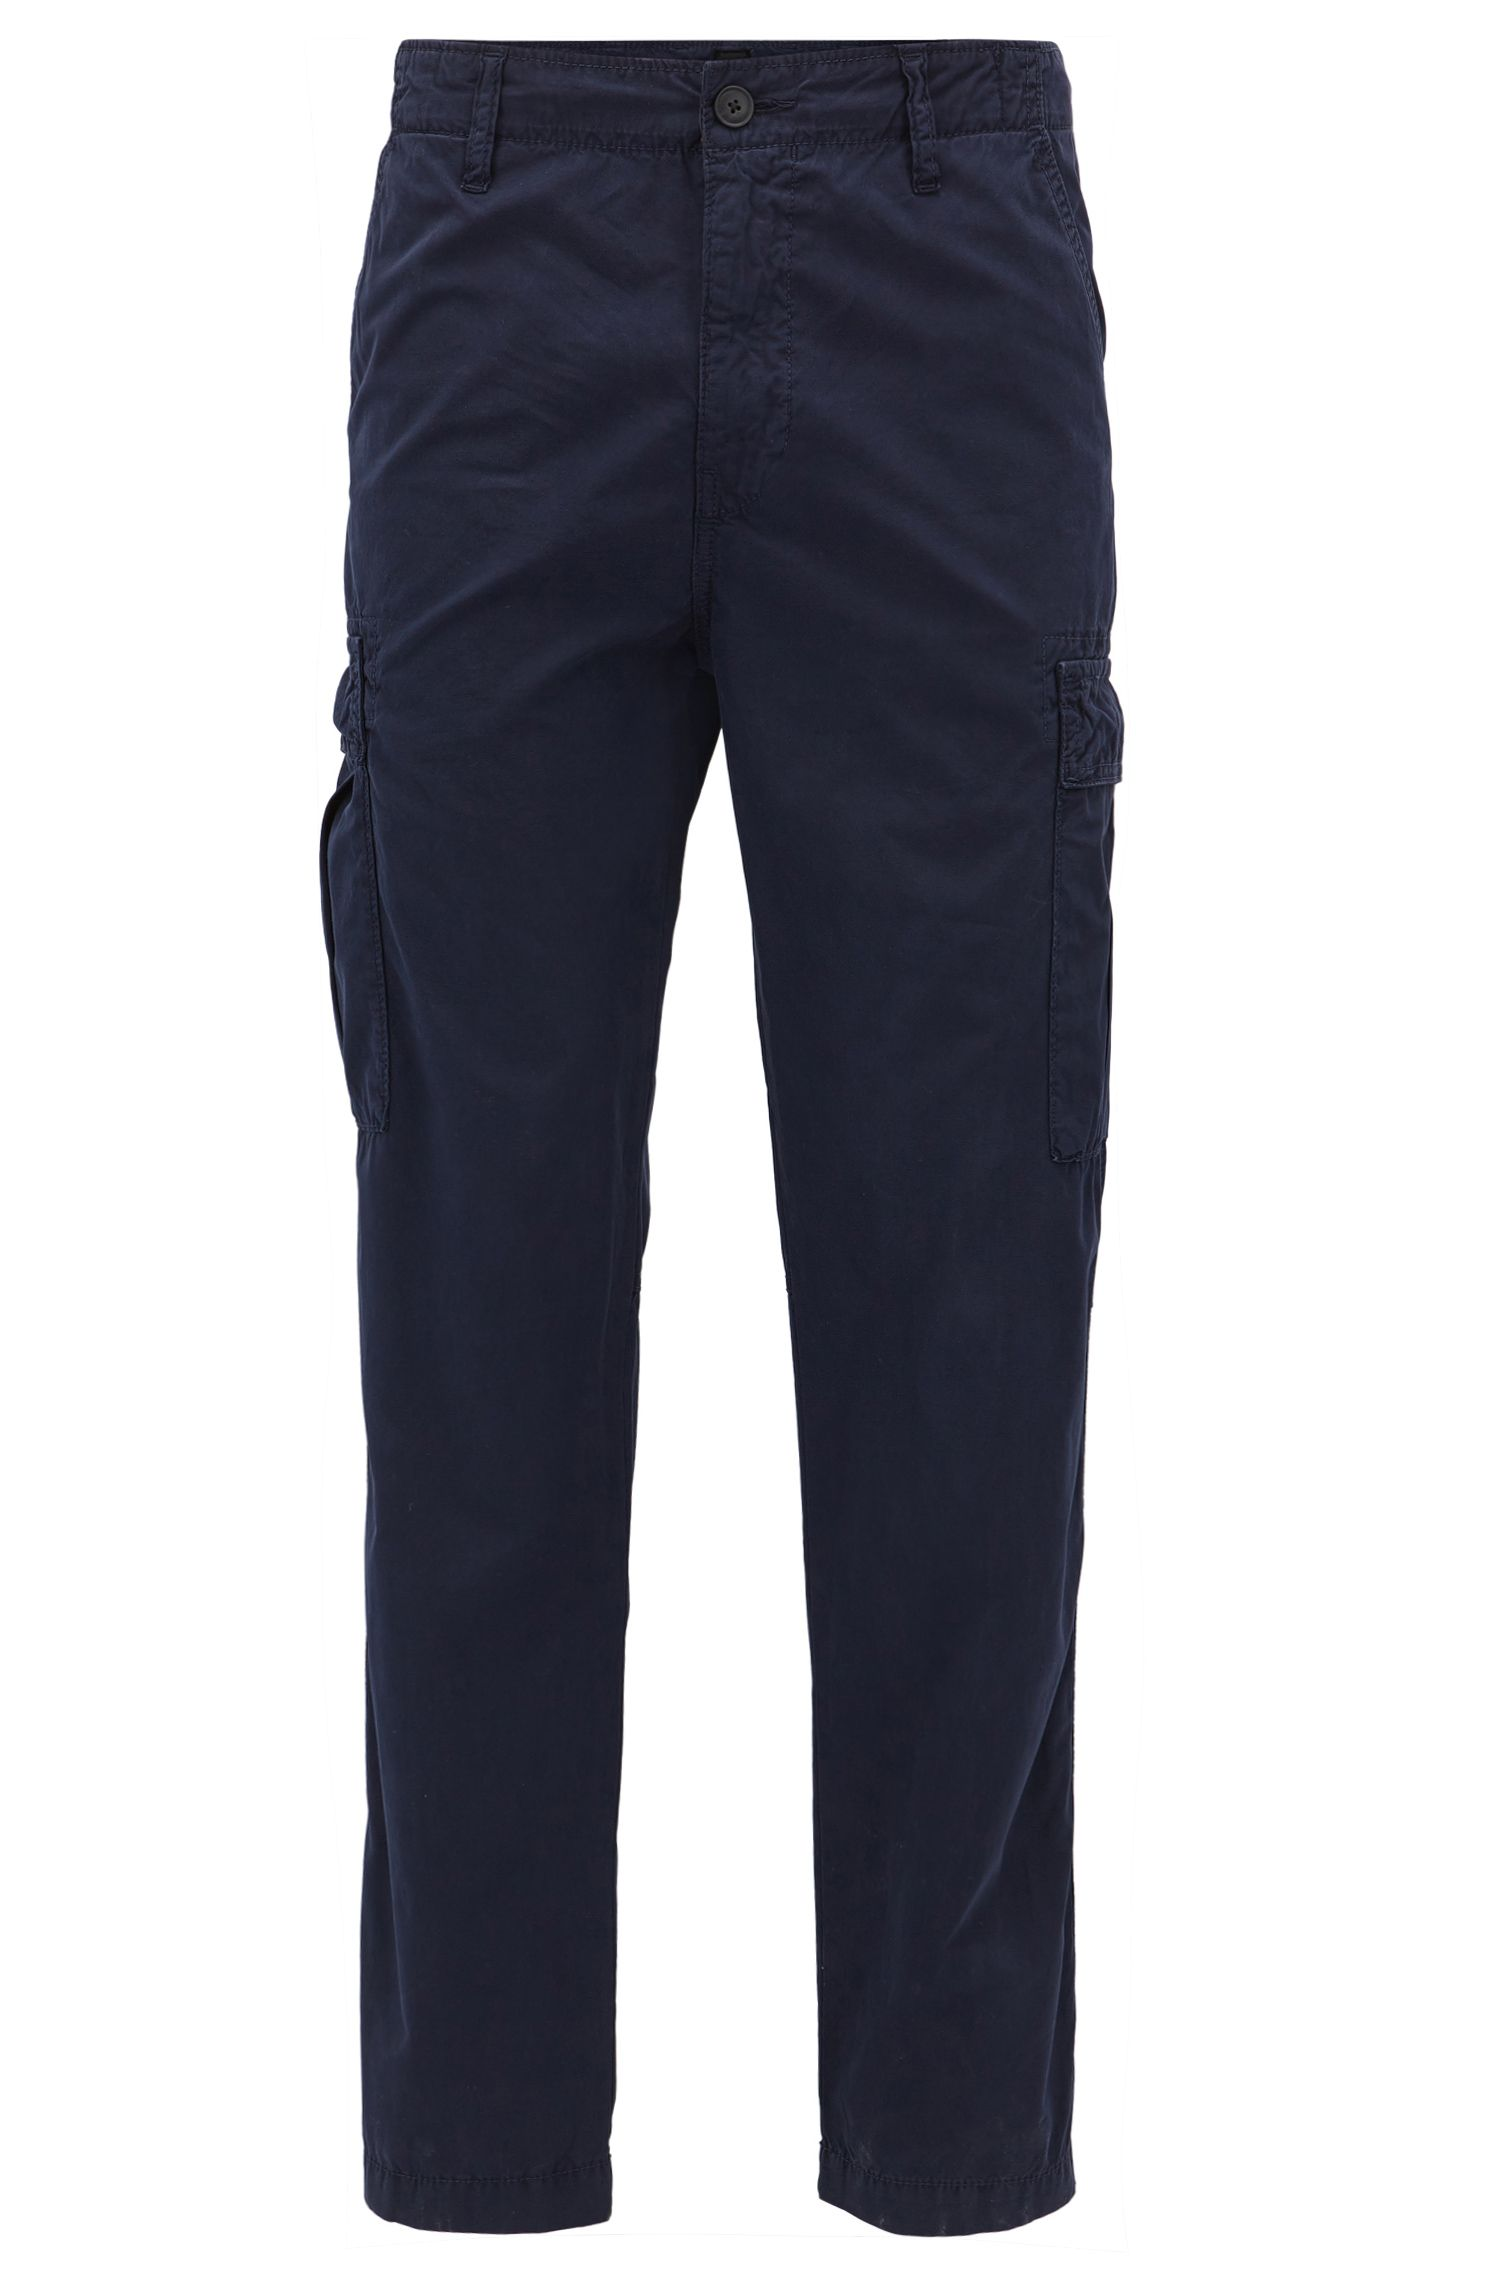 Pantaloni cargo tapered fit in popeline di cotone